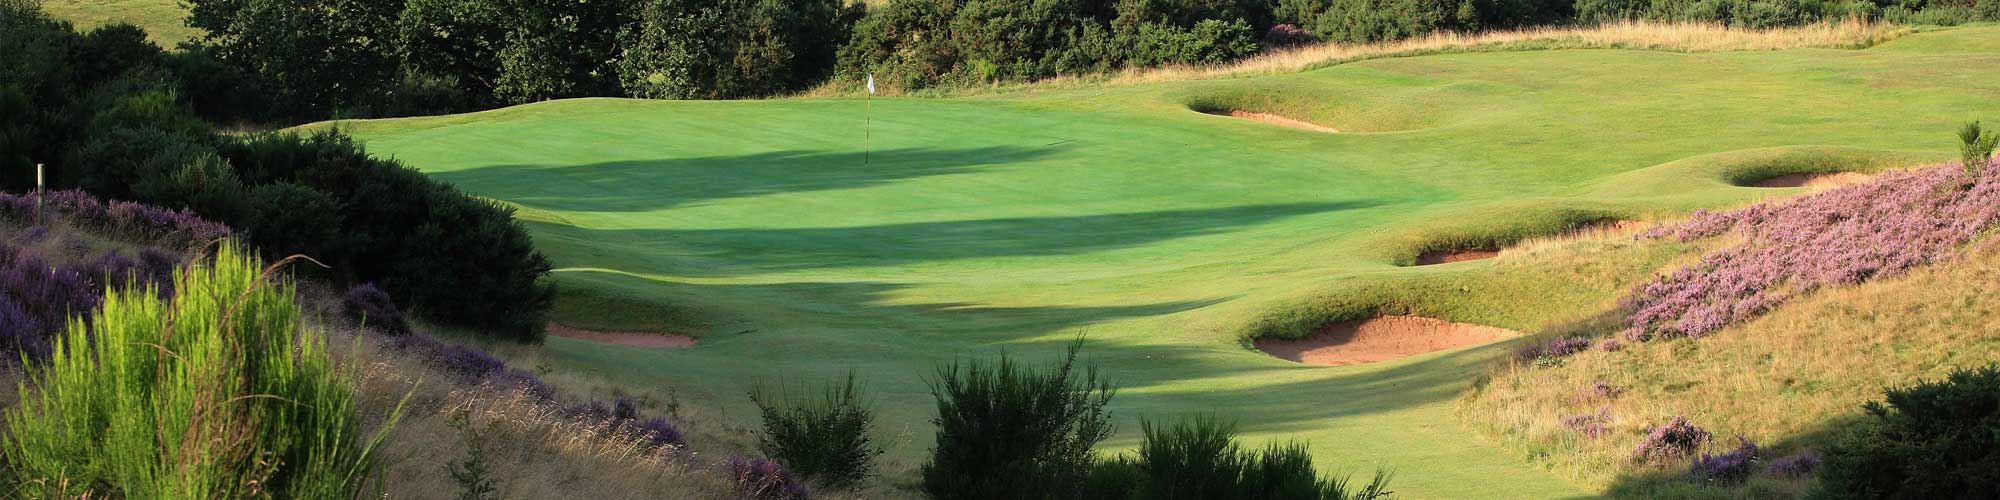 Golf at top quality venues throughout the midlands